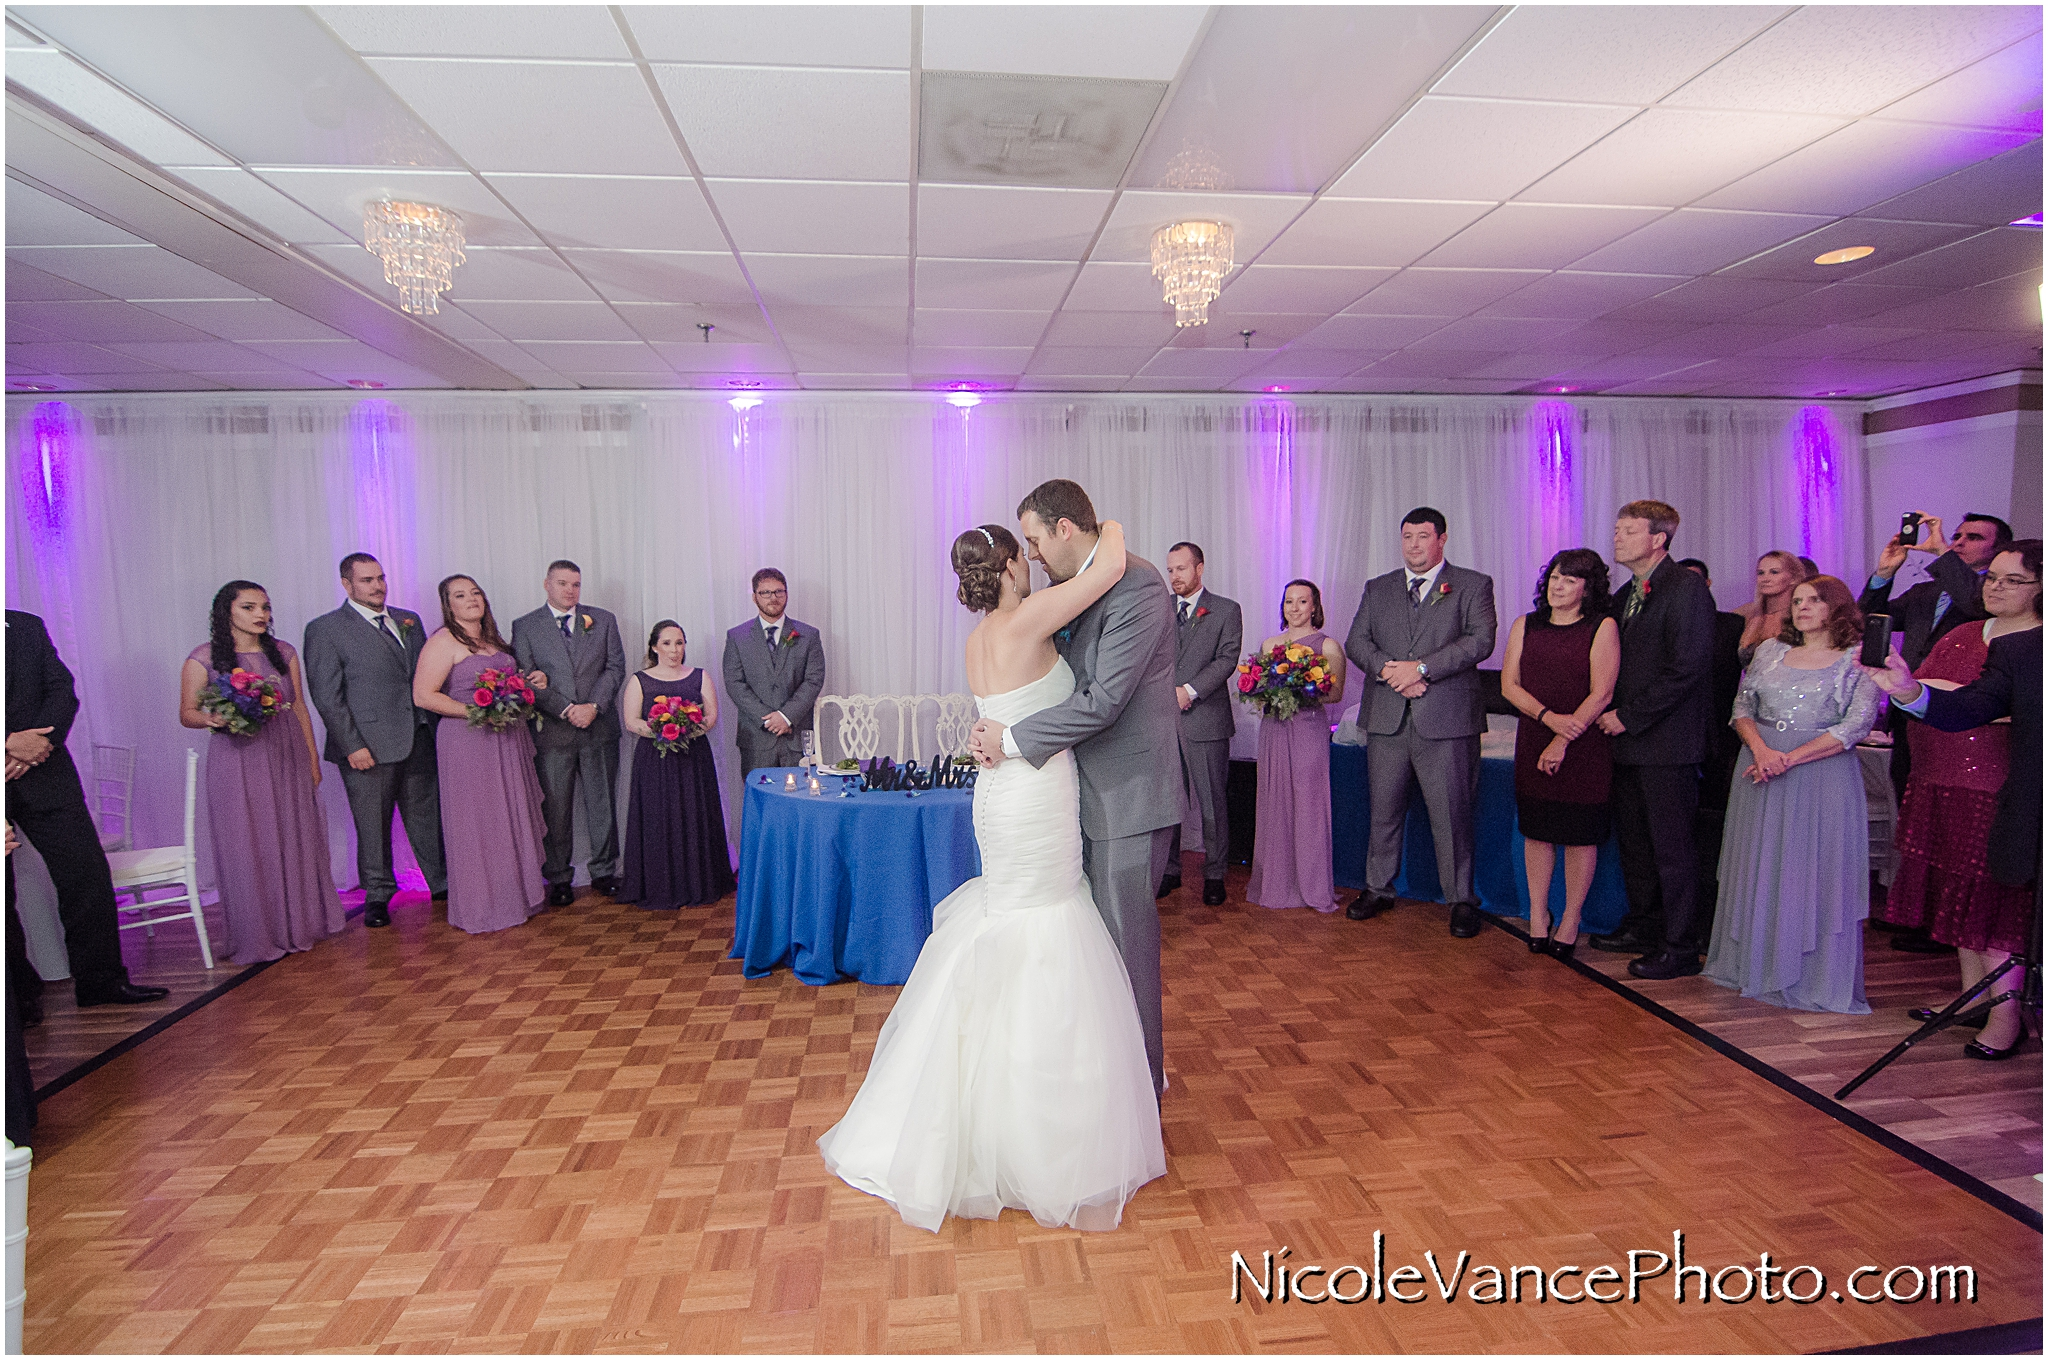 The bride and groom enjoy their first dance at their wedding reception at The Brownstone.